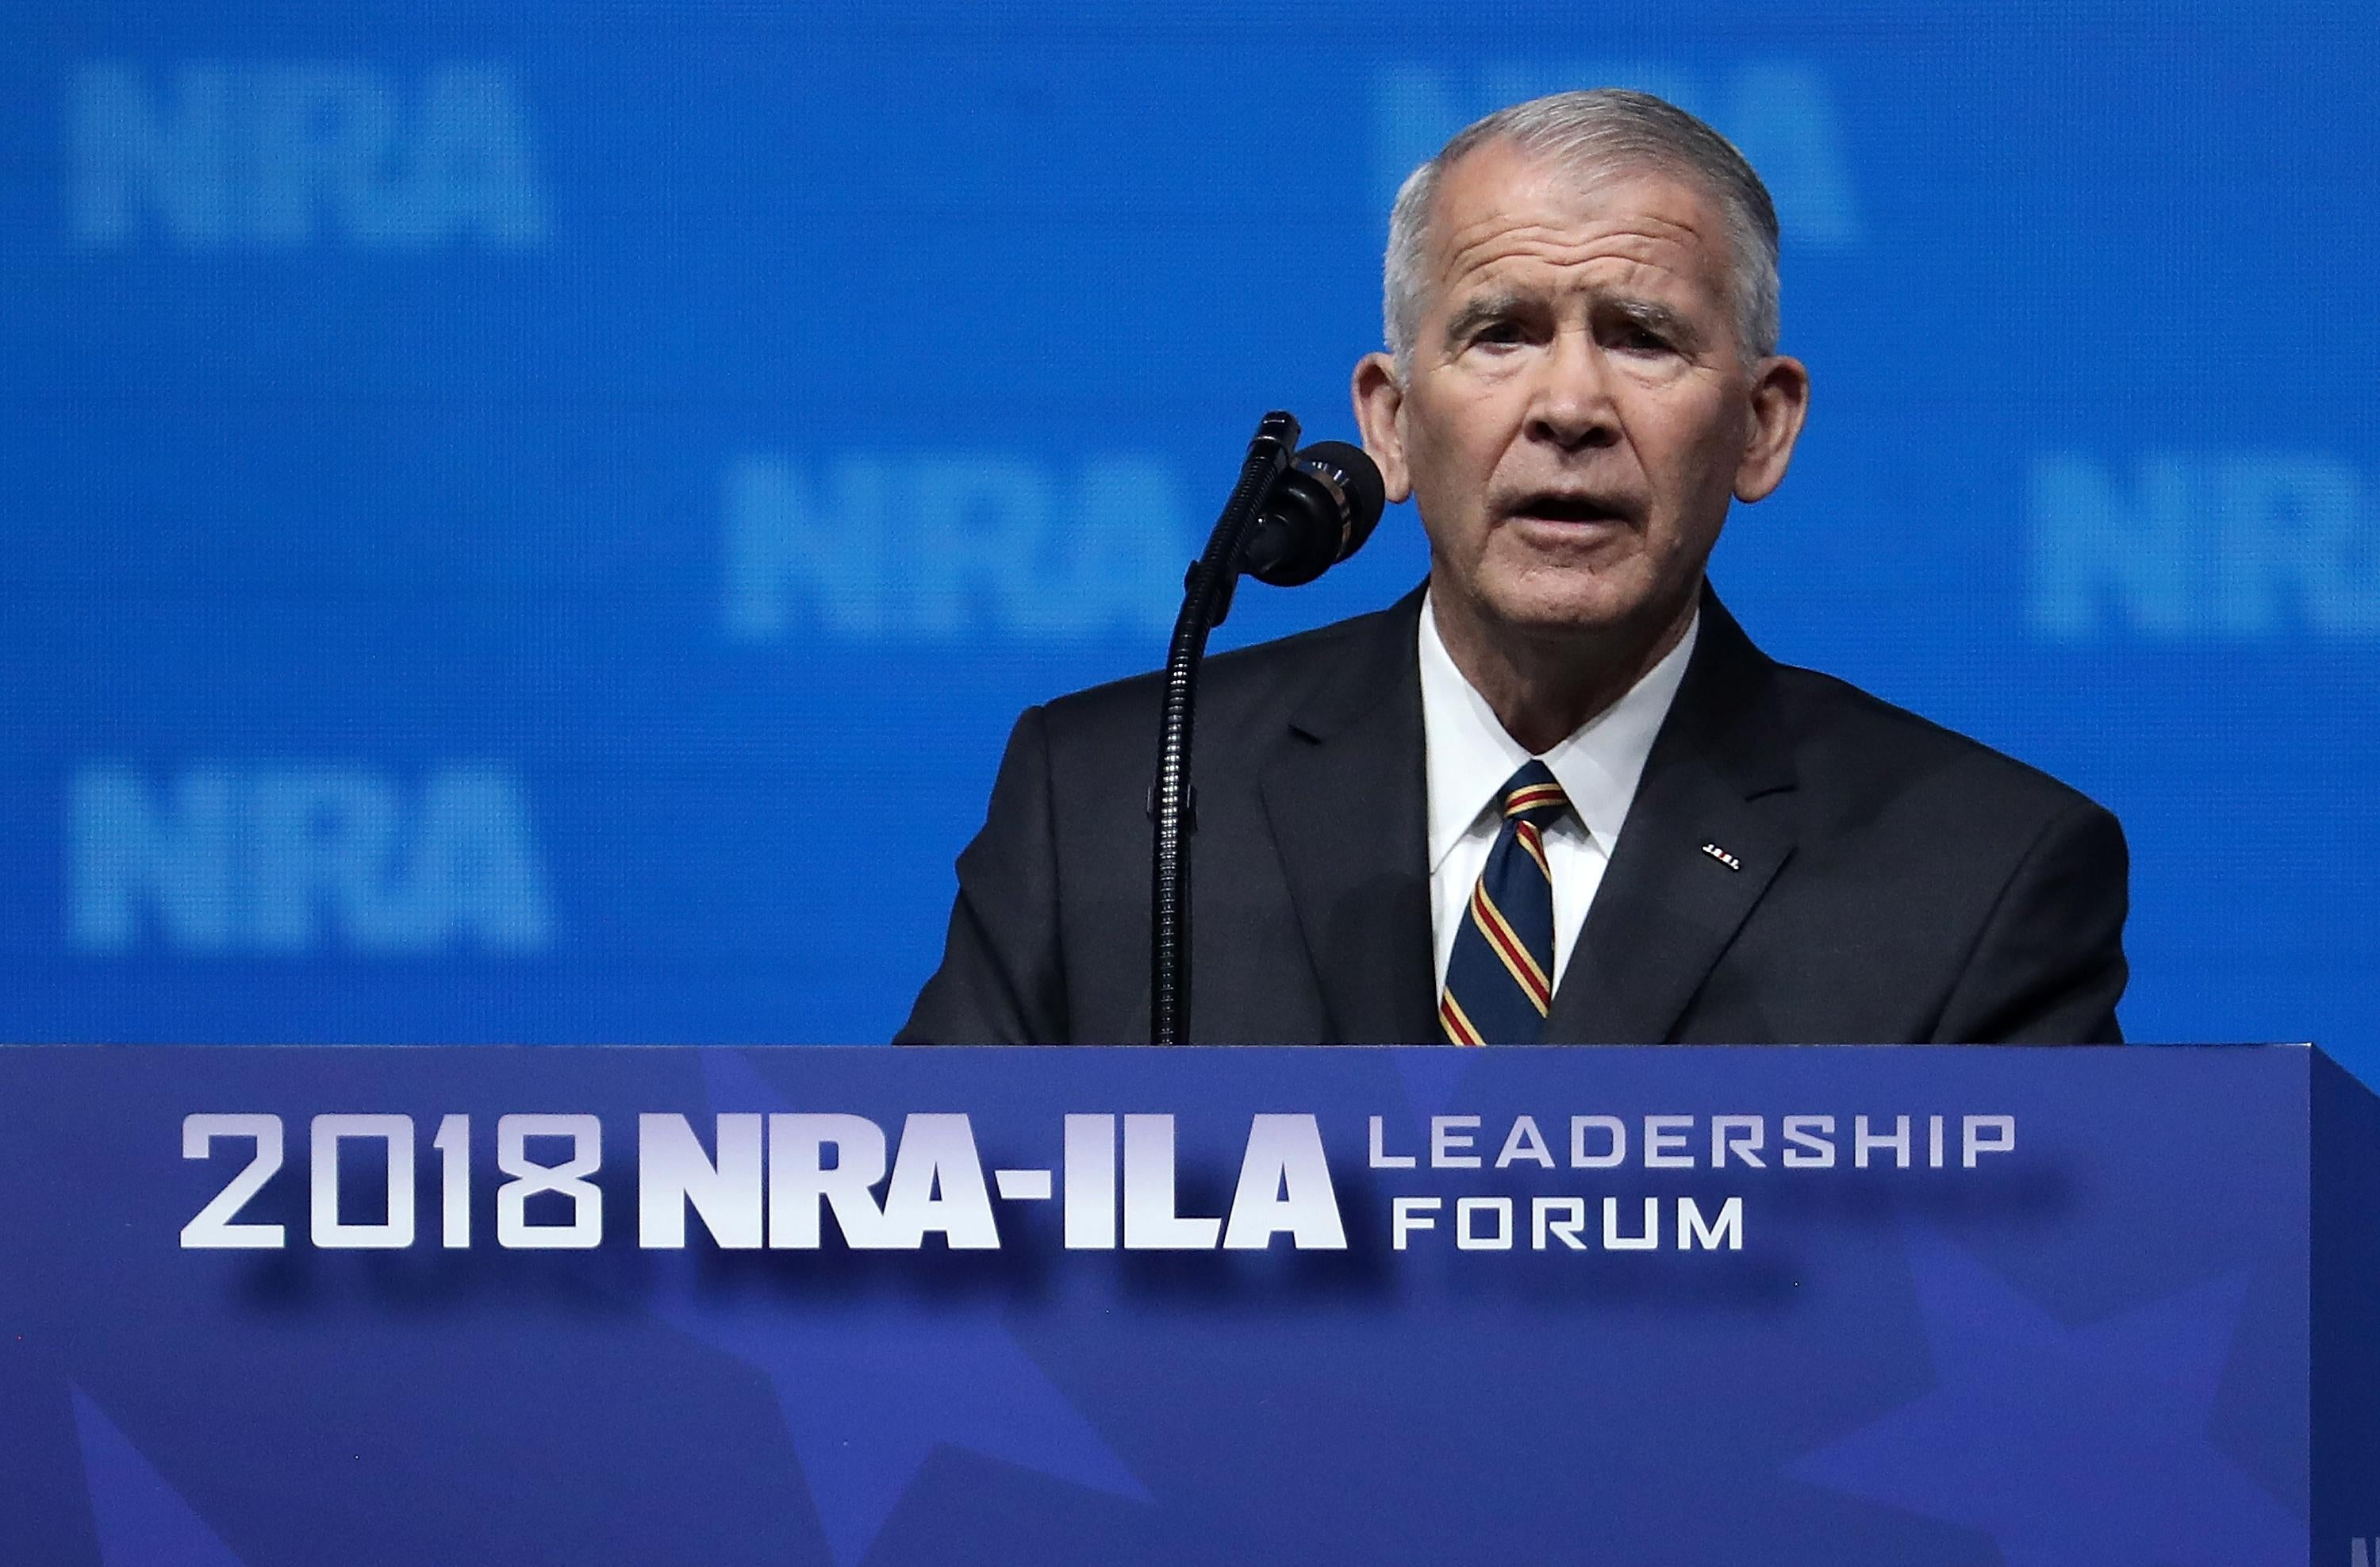 Oliver North speaks at the NRA-ILA Leadership Forum during the NRA Annual Meeting & Exhibits at the Kay Bailey Hutchison Convention Center on May 4, 2018 in Dallas, Texas.